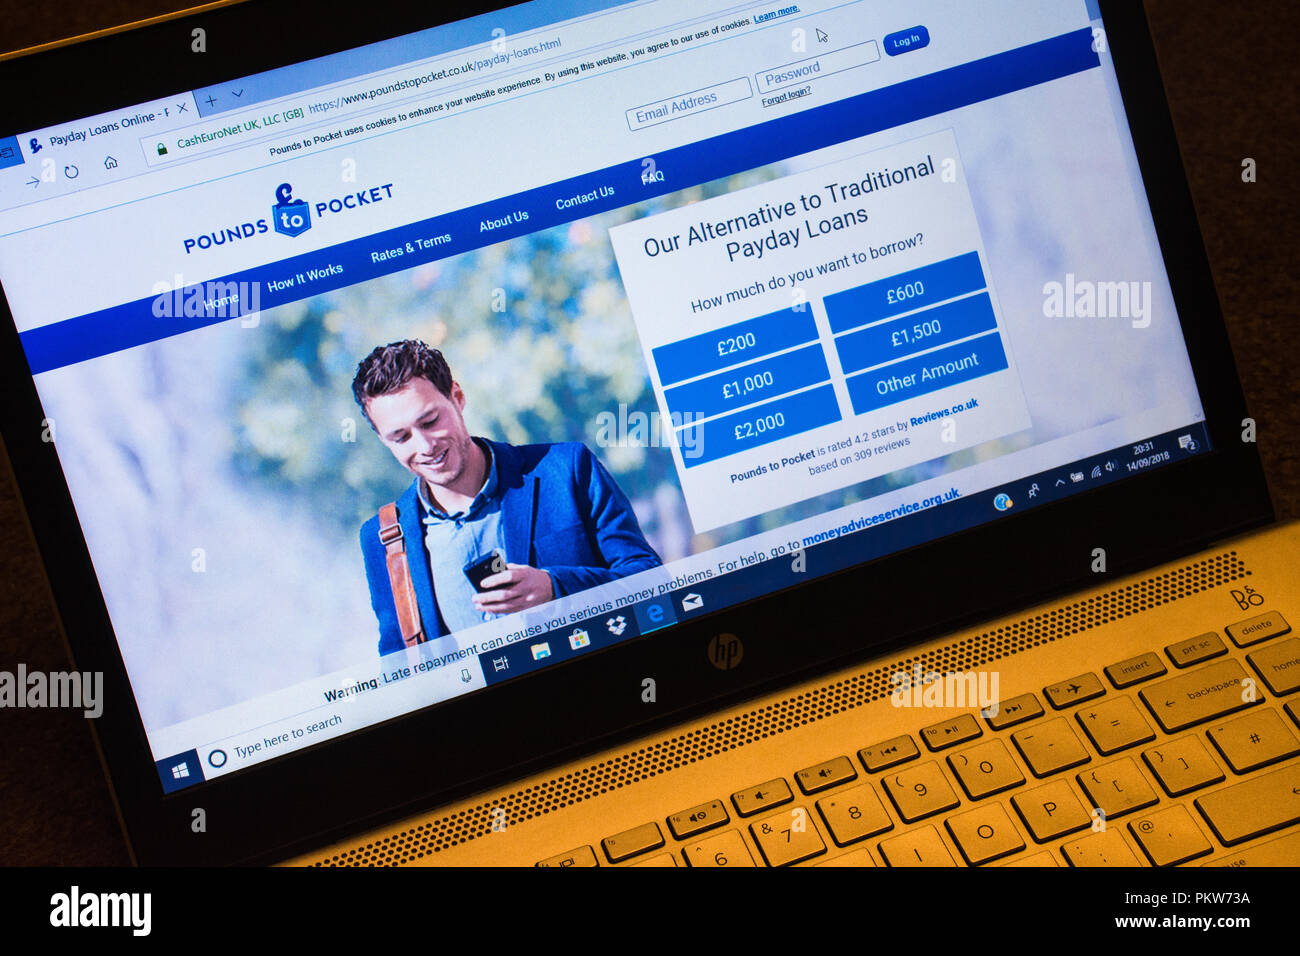 Pounds to pocket payday loans website screenshot on a laptop computer - Stock Image